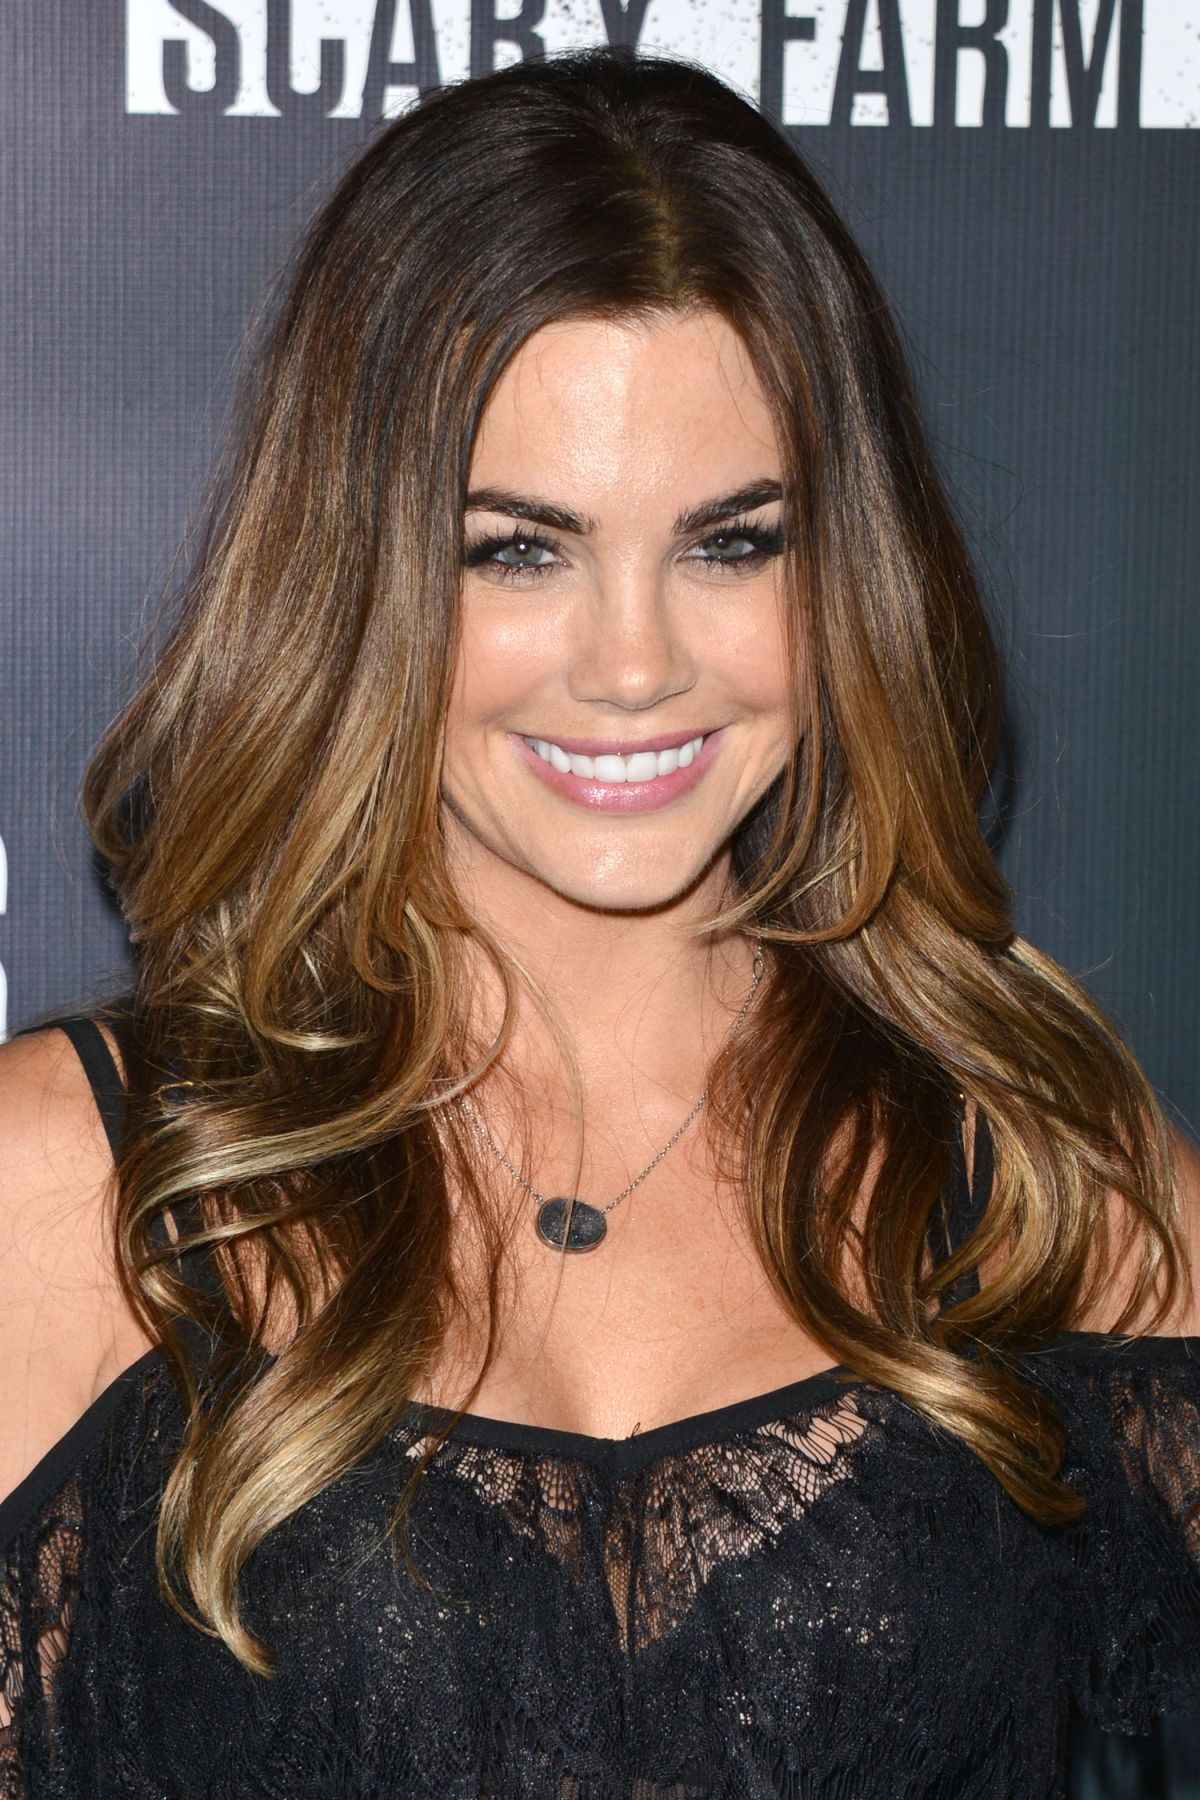 JILLIAN MURRAY at Knott's Scary Farm Openingh Night in Buena Park